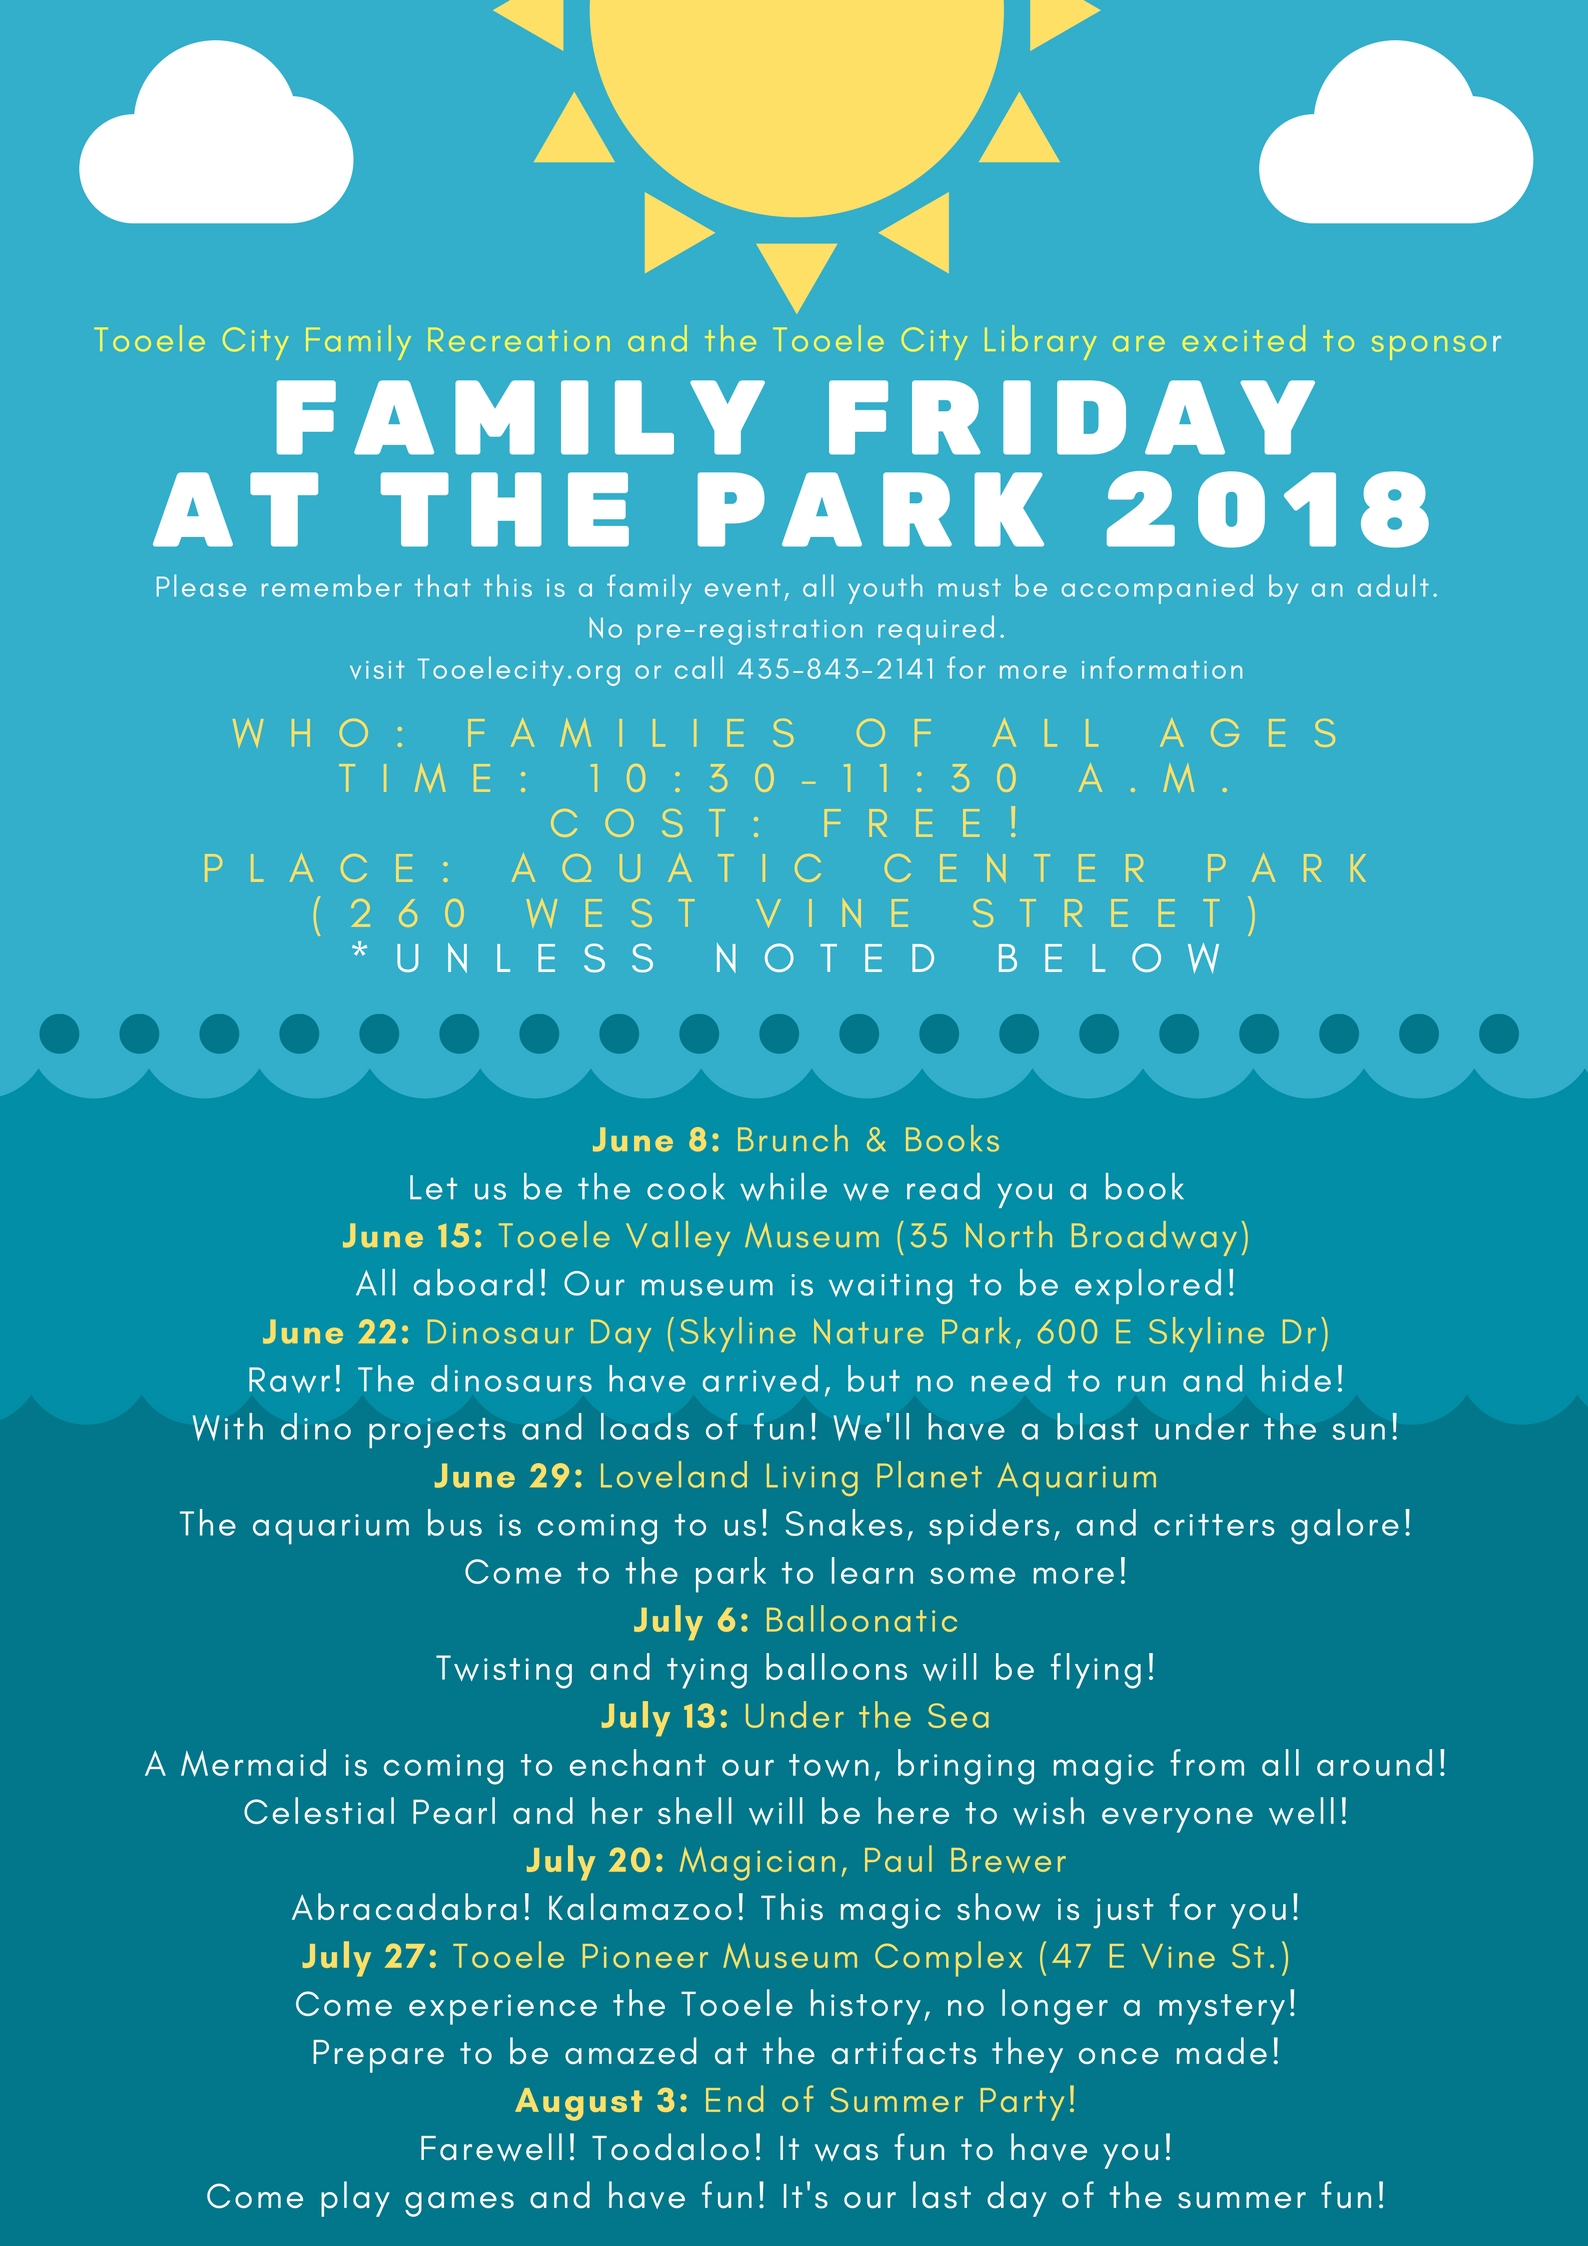 Friday at the Park:  End of Summer Party! @ Aquatic Center Park | Tooele | Utah | United States